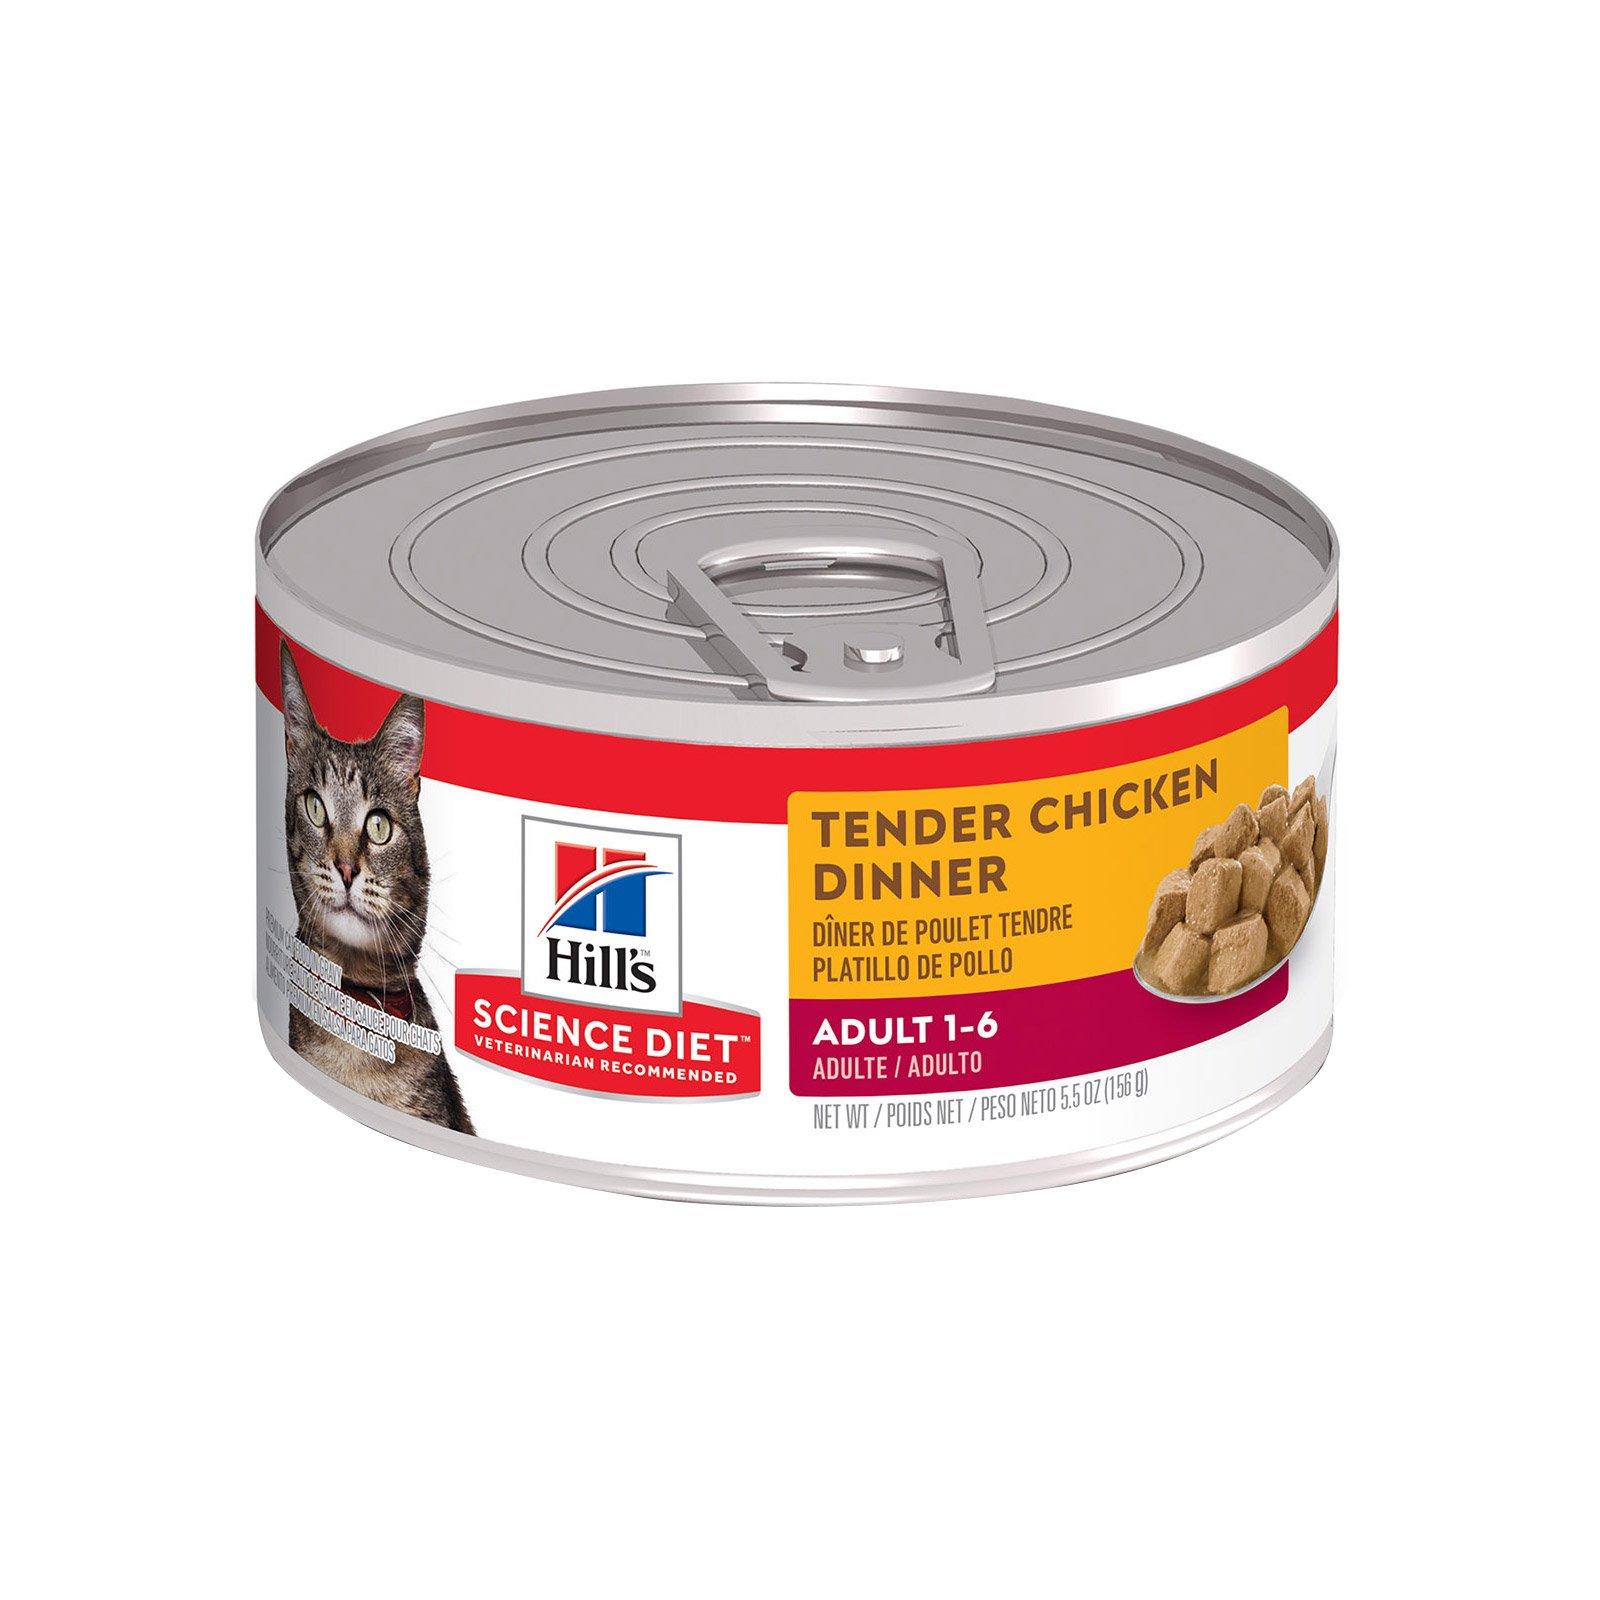 Hill's Science Diet Adult Tender Chicken Dinner Canned Wet Cat Food